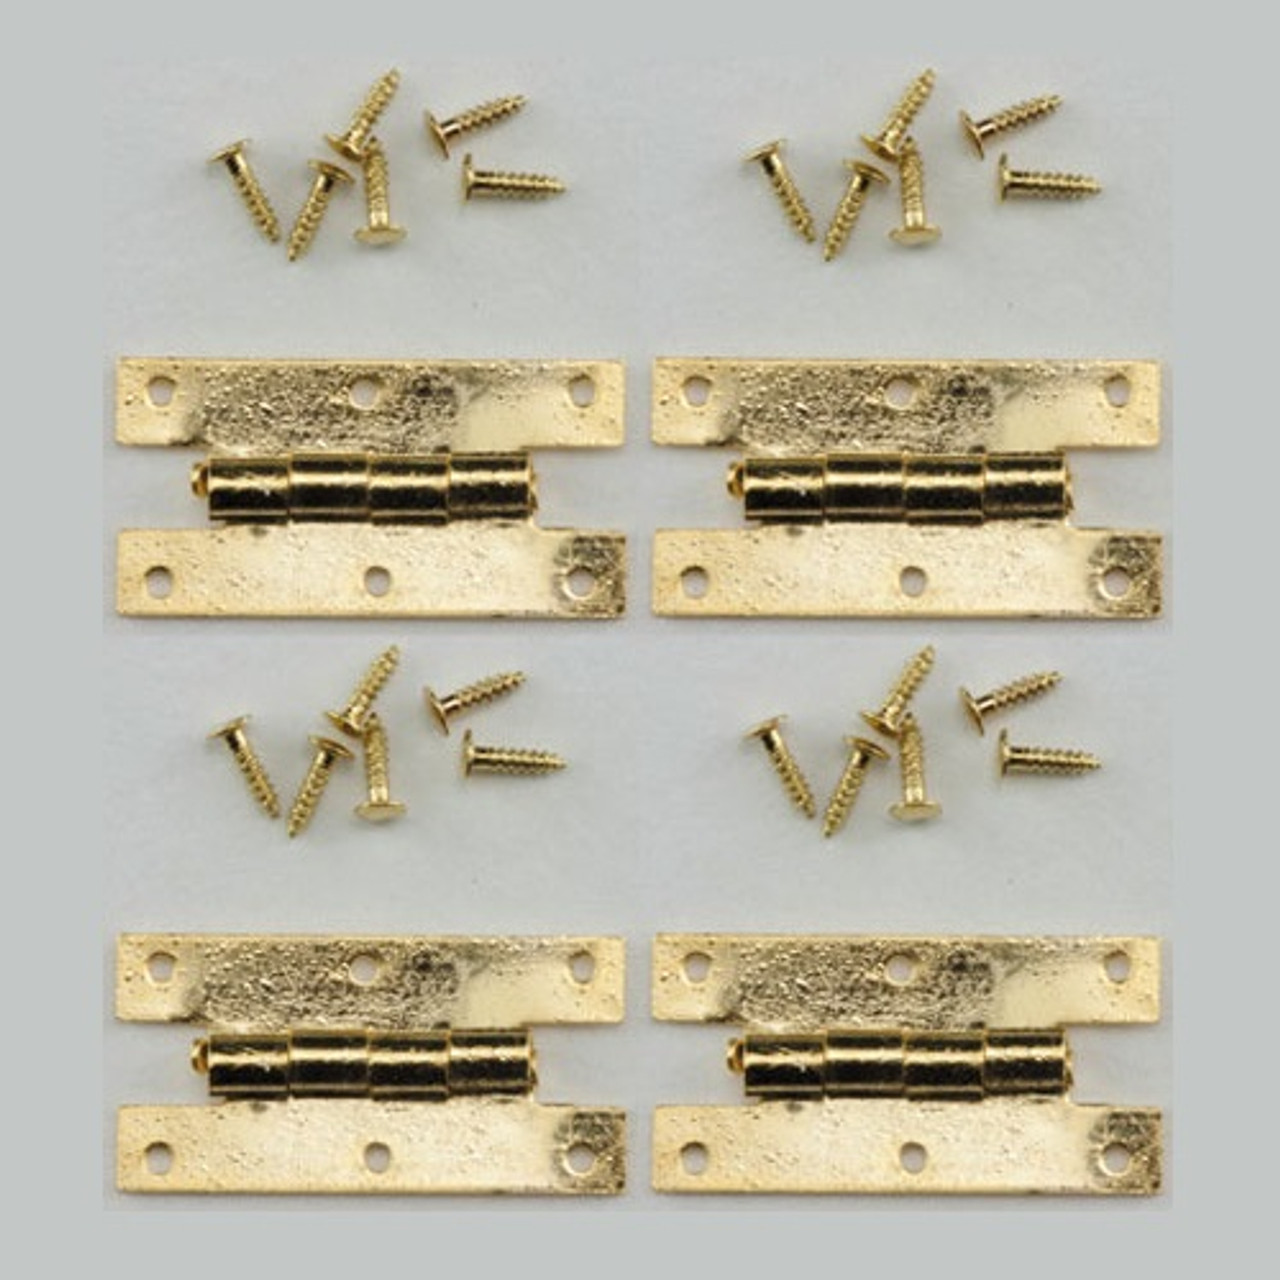 Image of miniature brass H hinges with nails/brads